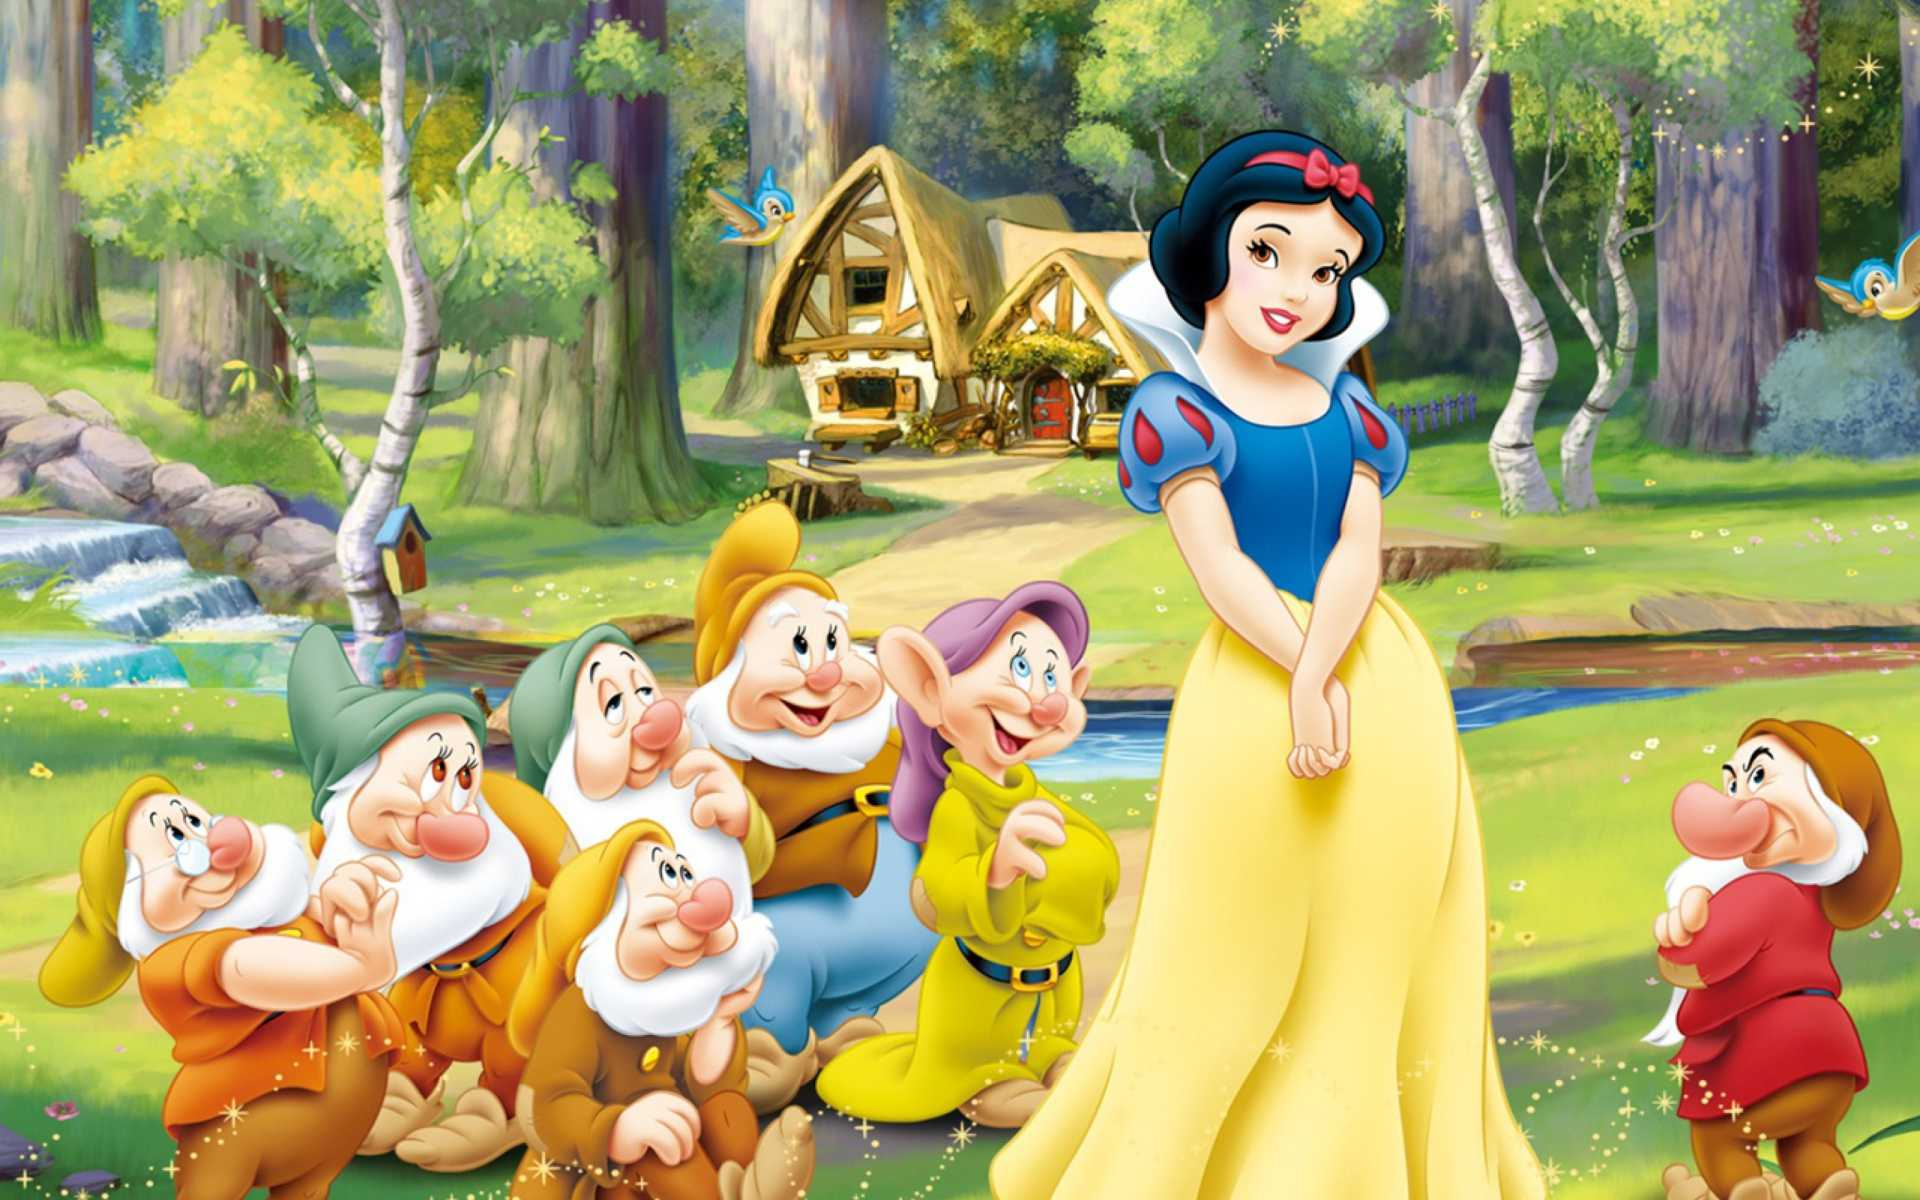 http://rointheknow.com/wp-content/uploads/2015/05/snow-white-and-the-seven-dwarfs-1920x1200.jpg